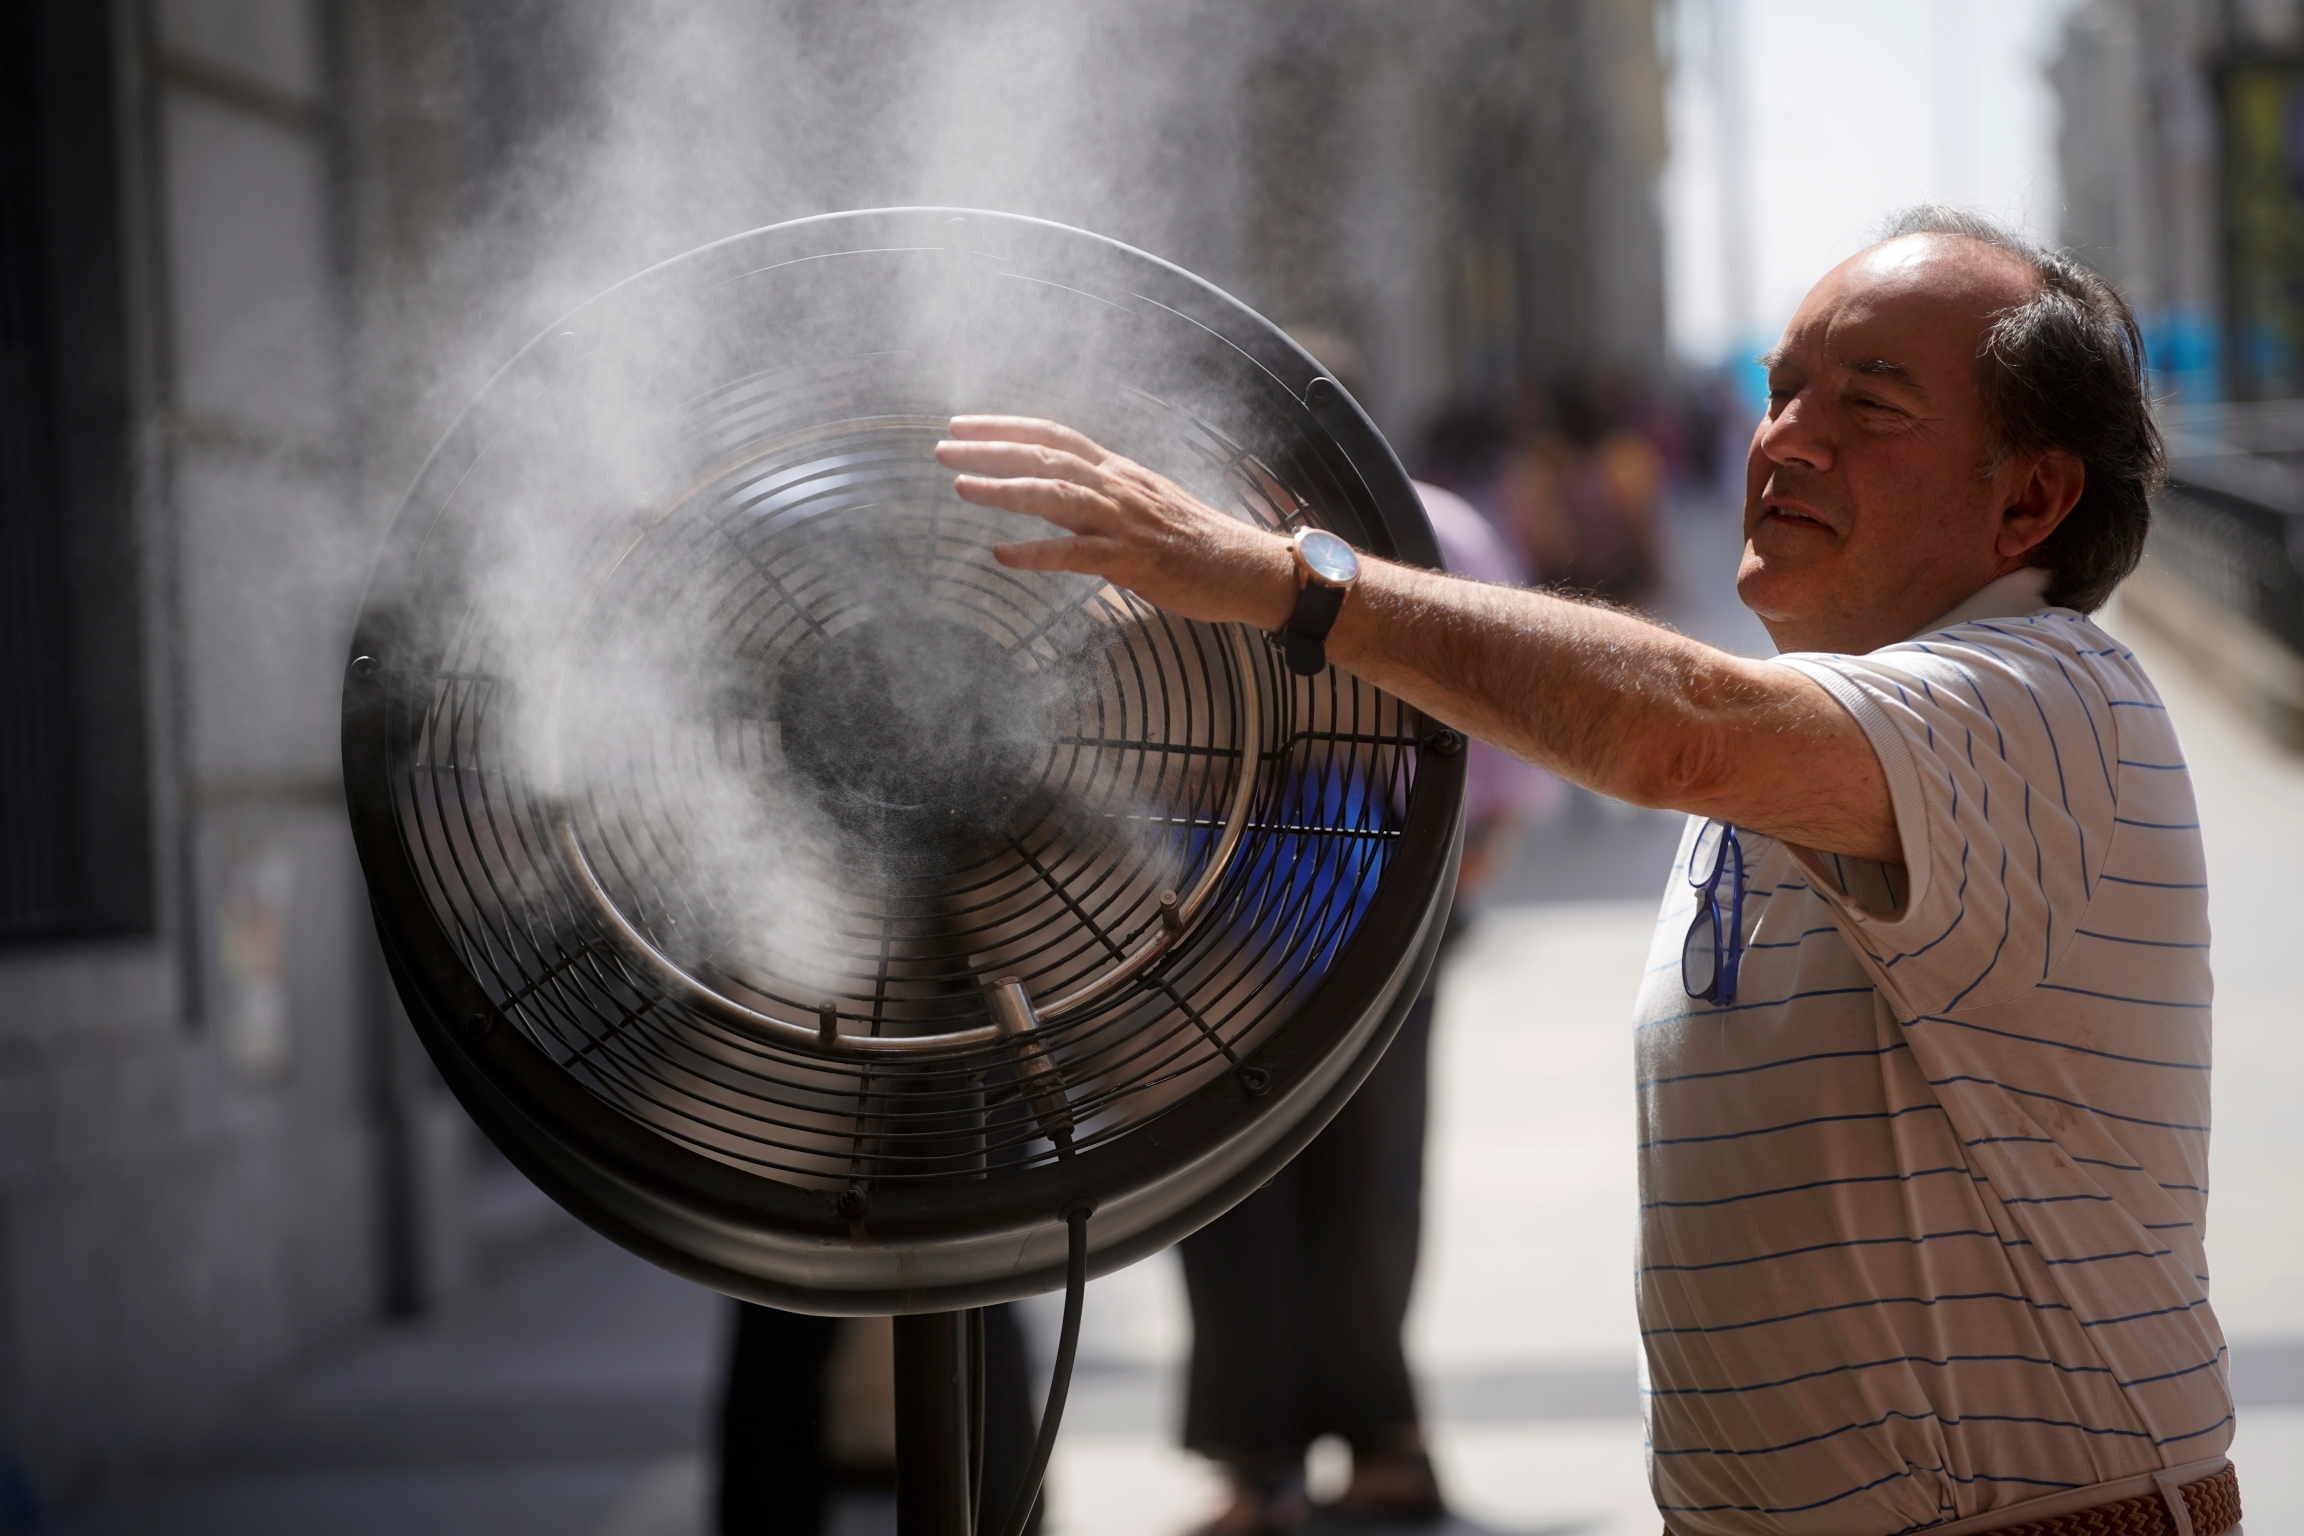 Man cools himself down with huge fan and water splash